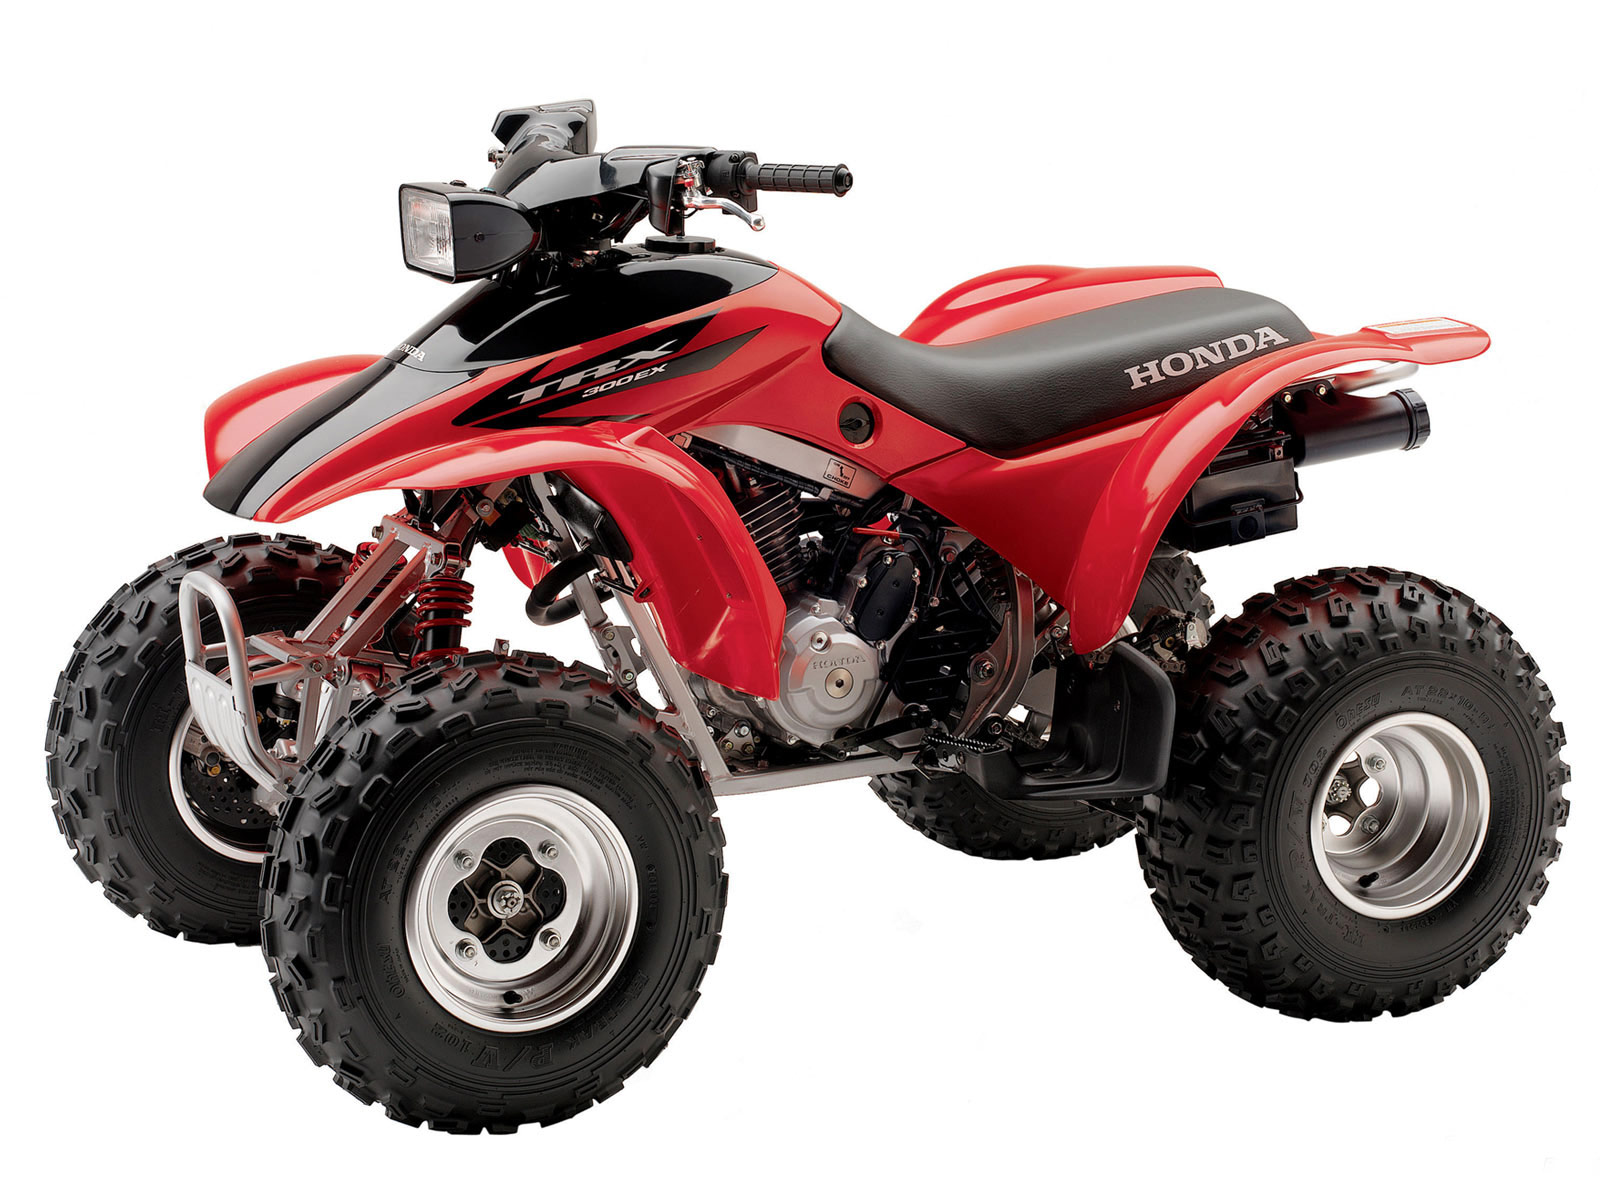 honda atv pictures 2006 trx300ex specs accident lawyers. Black Bedroom Furniture Sets. Home Design Ideas